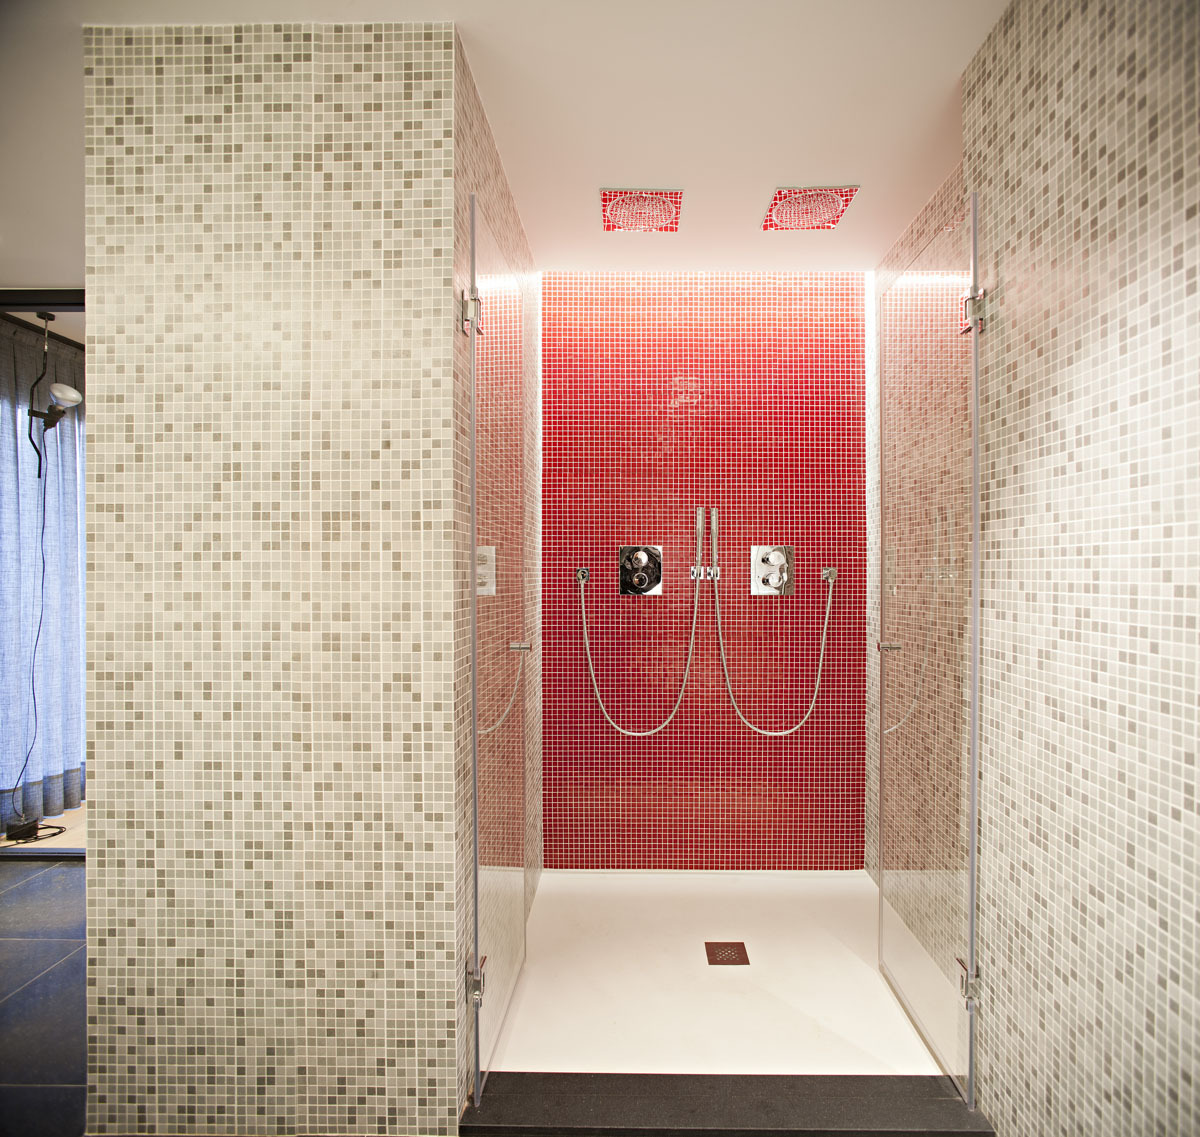 Sensational Bathroom Interior With Mosaic Wall Tile Design (Image 6 of 9)